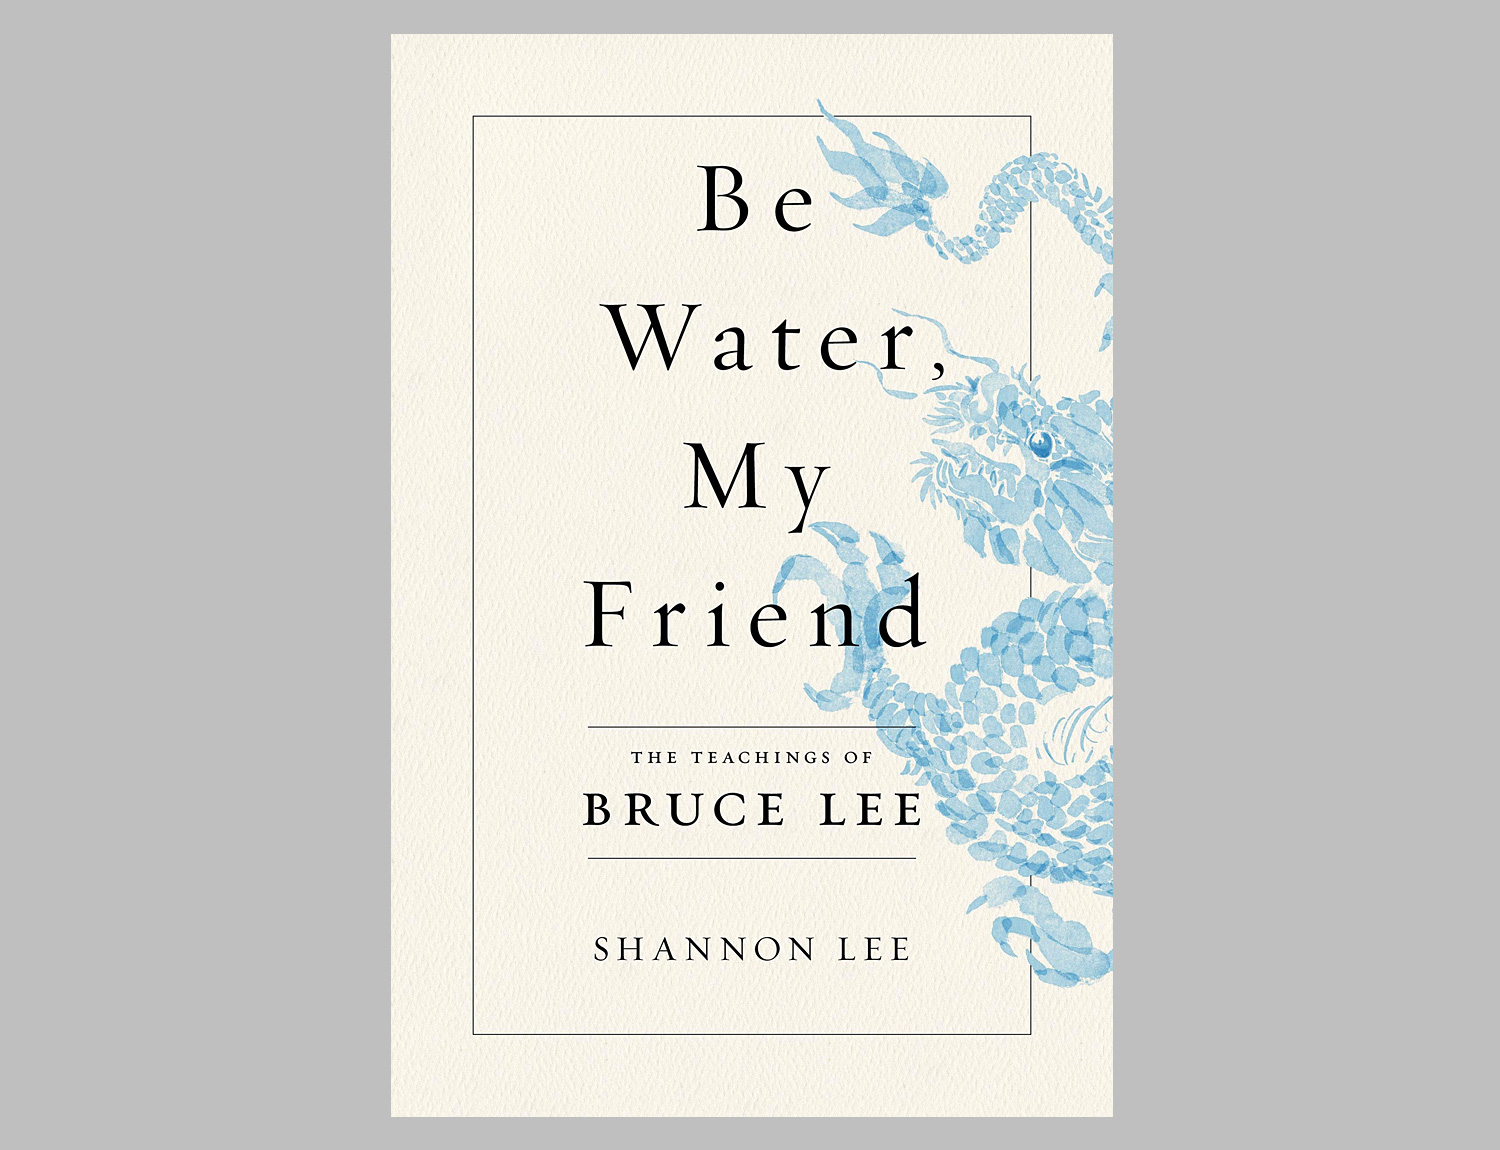 Be Water, My Friend: The Teachings of Bruce Lee at werd.com